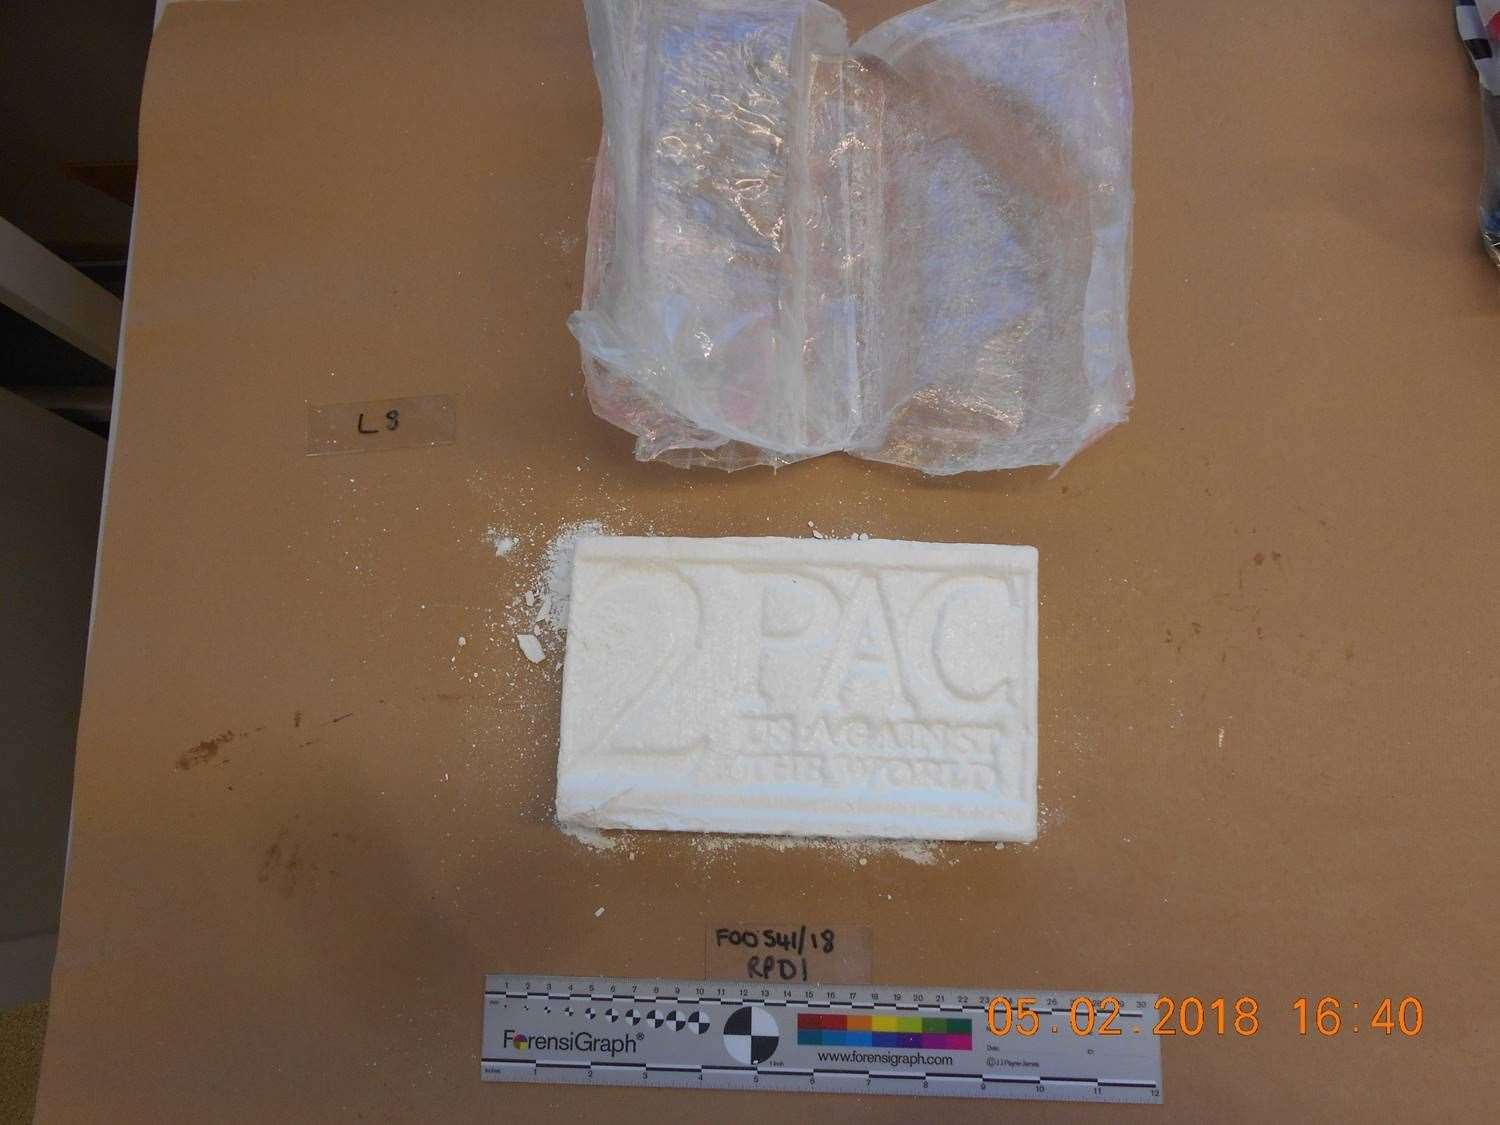 Cocaine seized by police